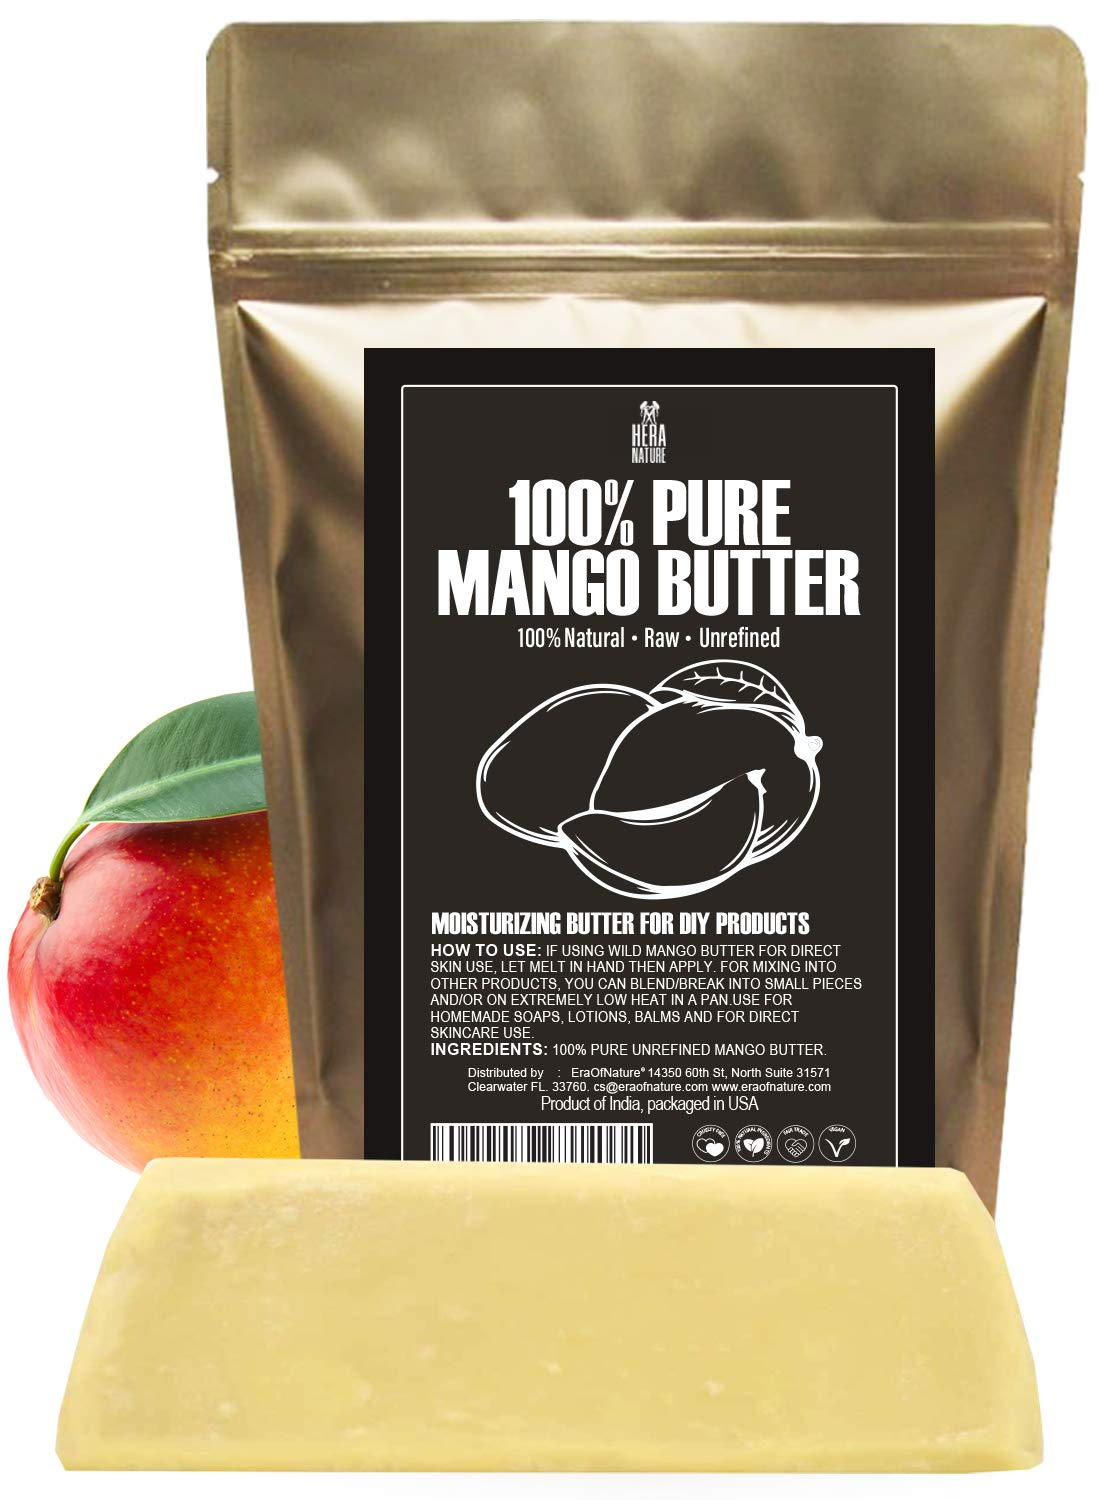 Raw, Unrefined Mango Butter Bar, 8 oz - Amazing Moisturizer, Use Alone or in DIY Body Butters, Soaps, Lotions and lip balm - Natural, Pure and Fresh (USA)